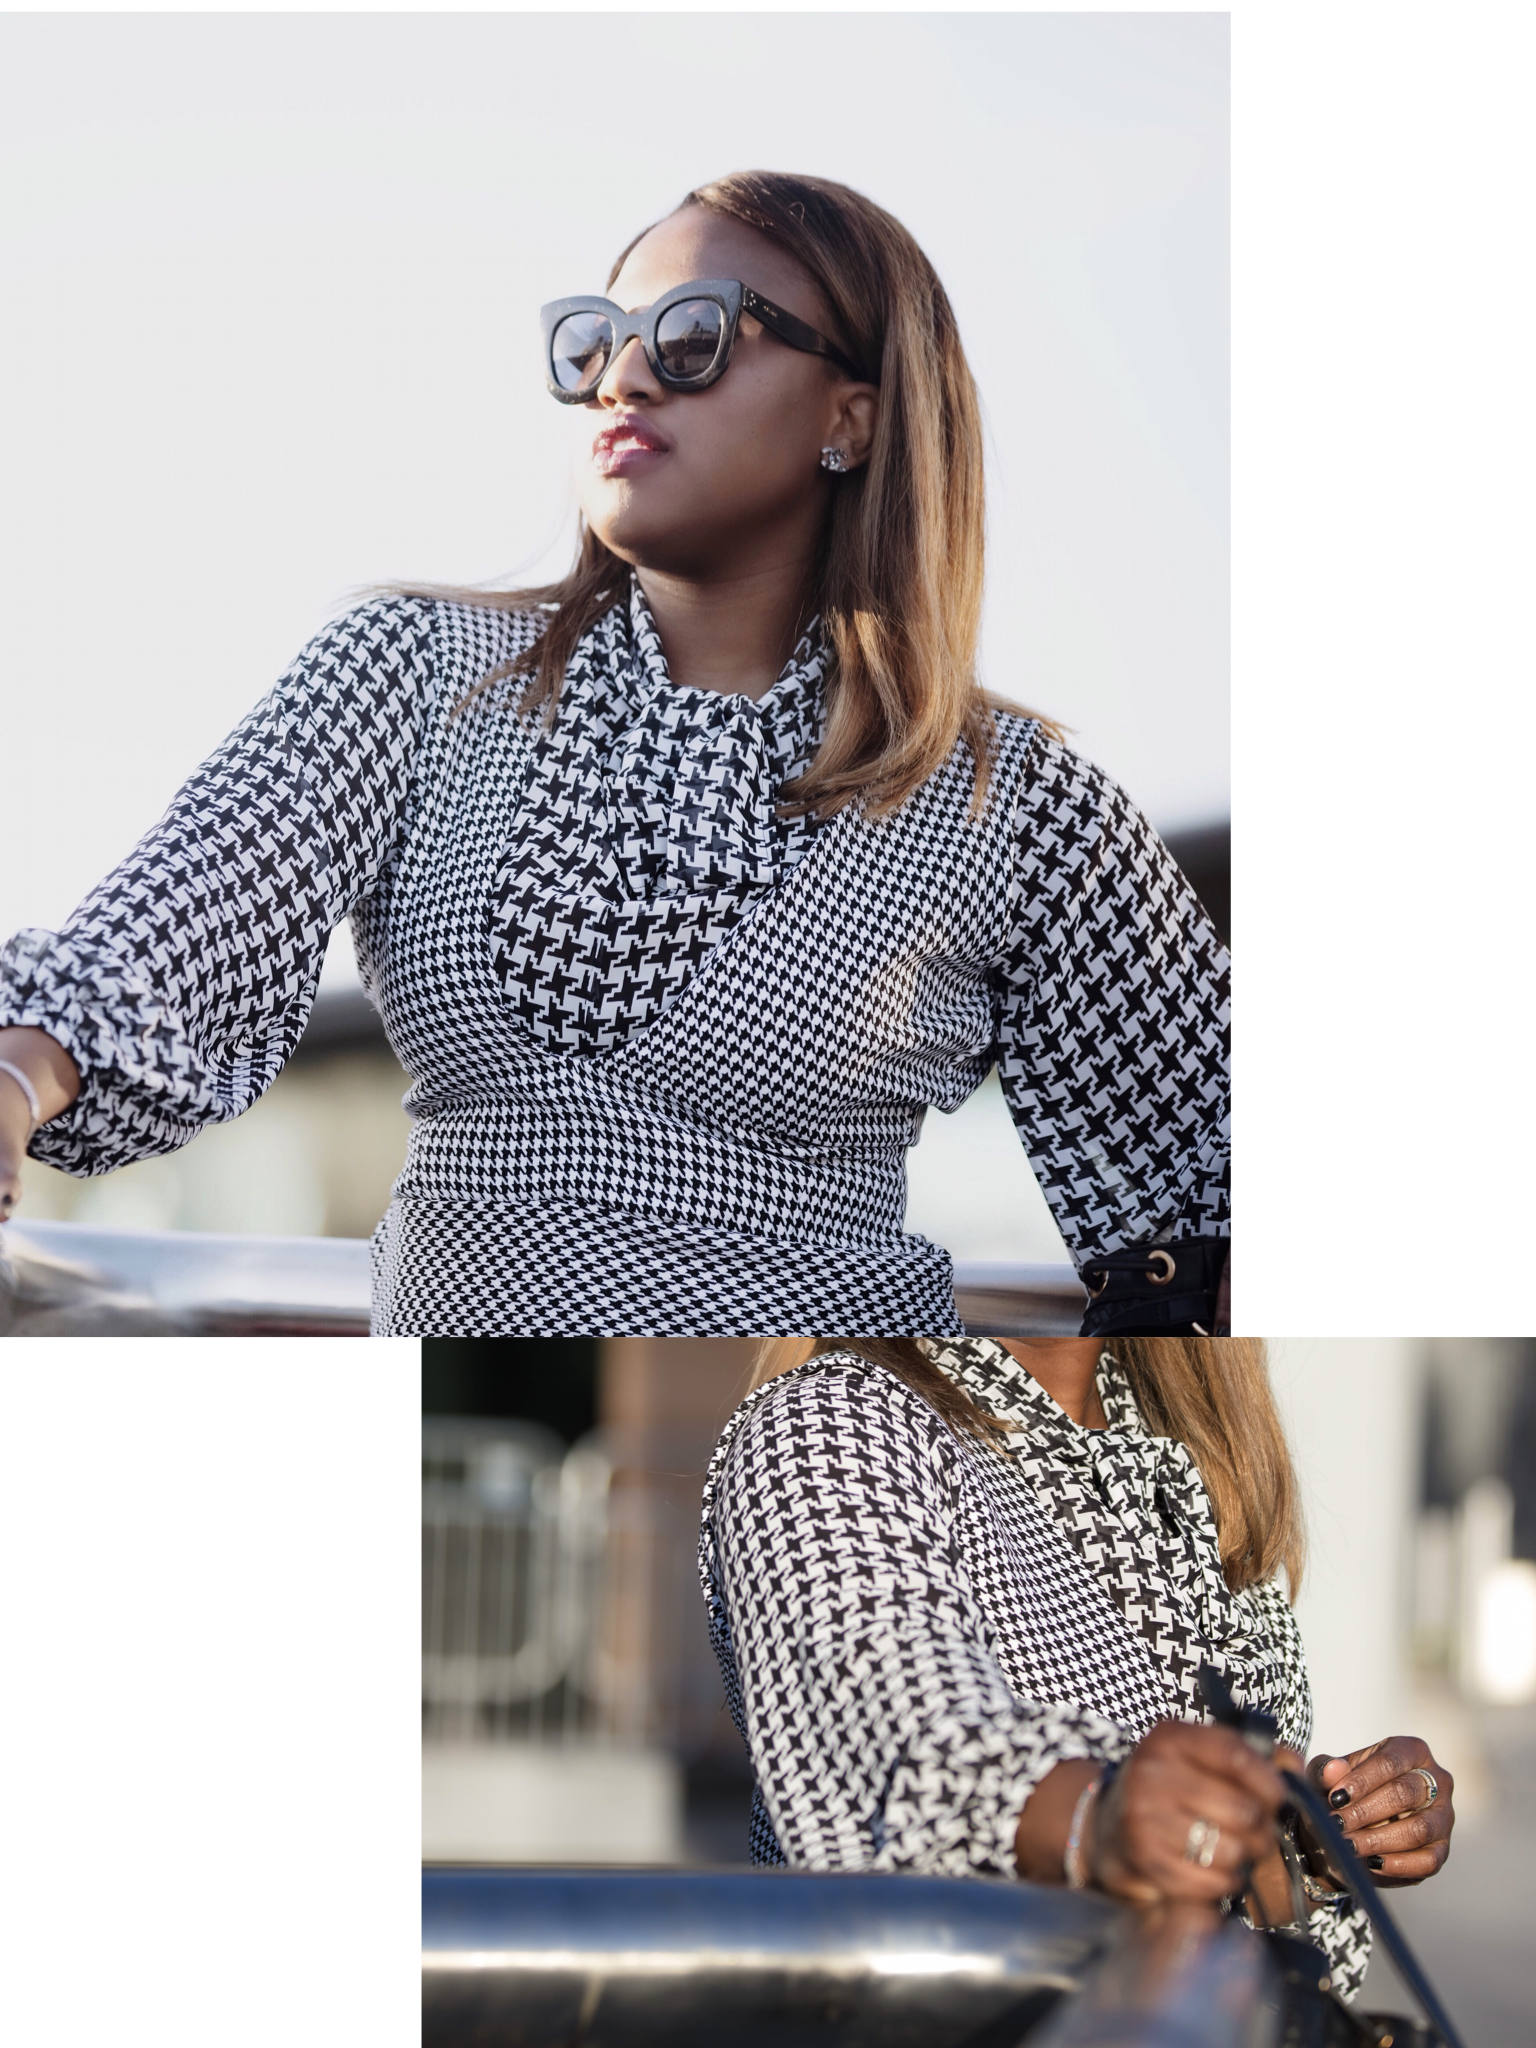 HOW TO REWORK HOUNDSTOOTH FOR WINTER '18